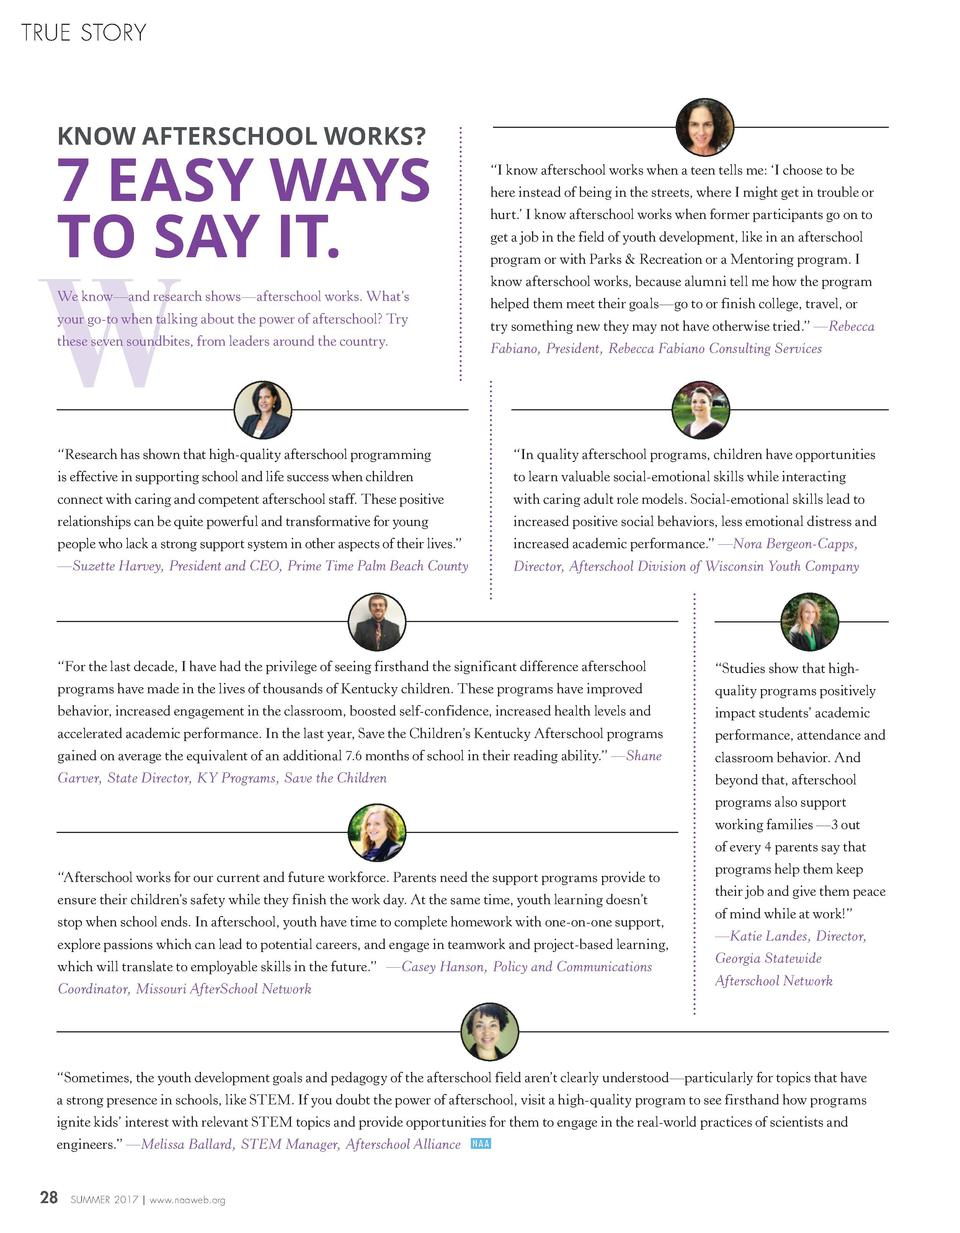 TRUE STORY  KNOW AFTERSCHOOL WORKS   7 EASY WAYS TO SAY IT.  W  We know   and research shows   afterschool works. What   s...